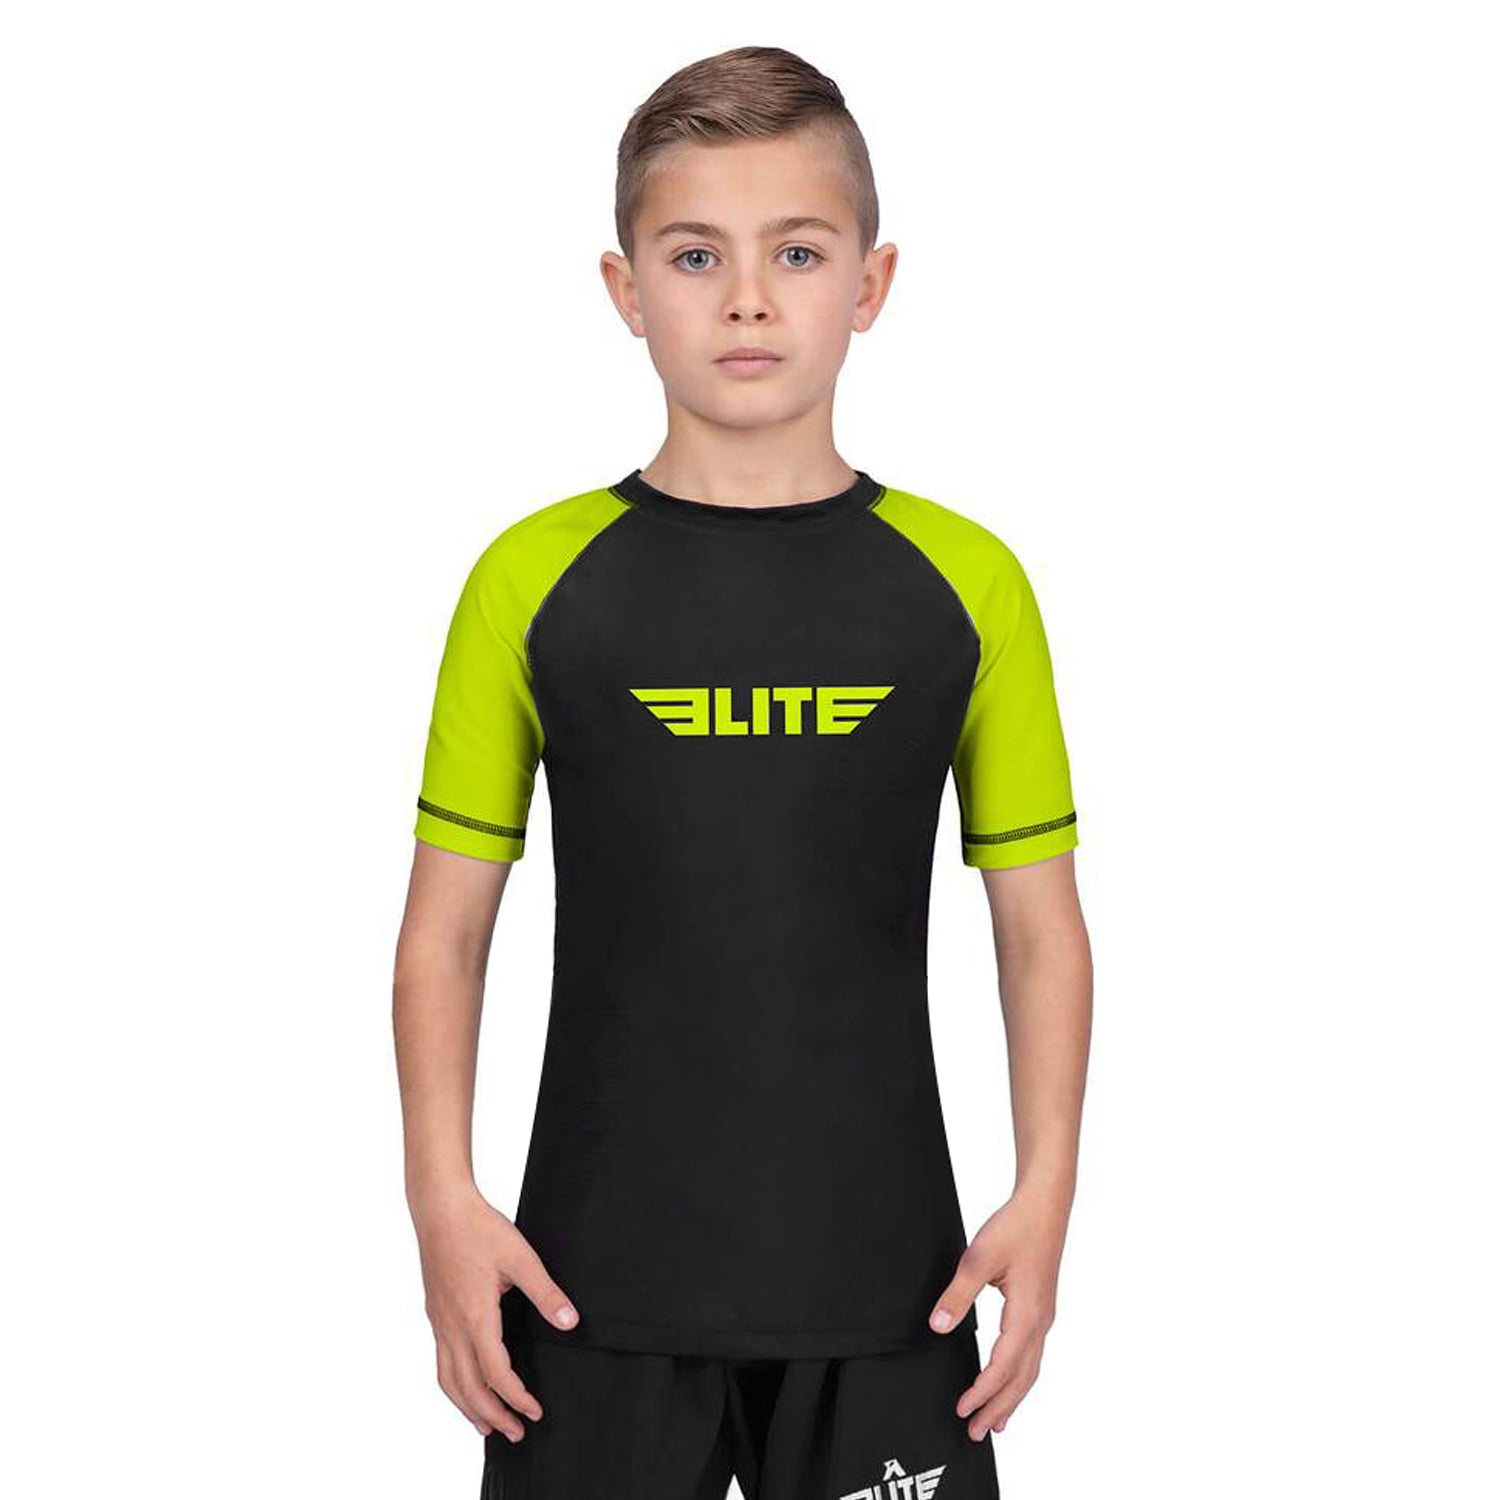 Elite Sports Standard Hi-Viz/Black Short Sleeve Kids Muay Thai Rash Guard